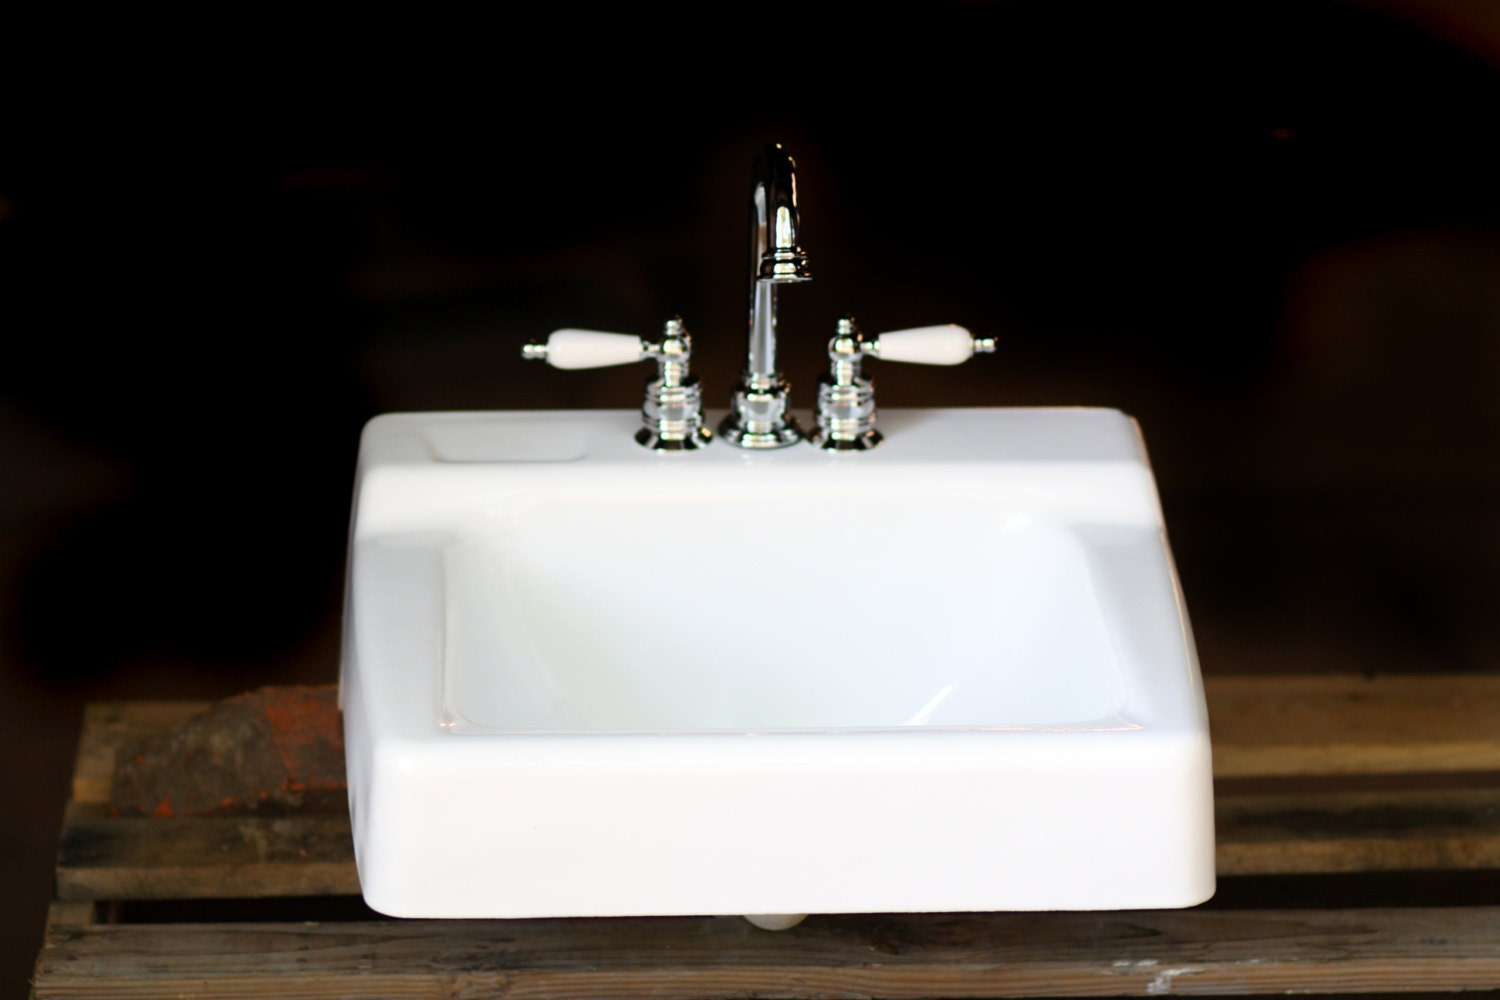 1966 Kohler Porcelain and Cast Iron Period Bath Sink by readytore